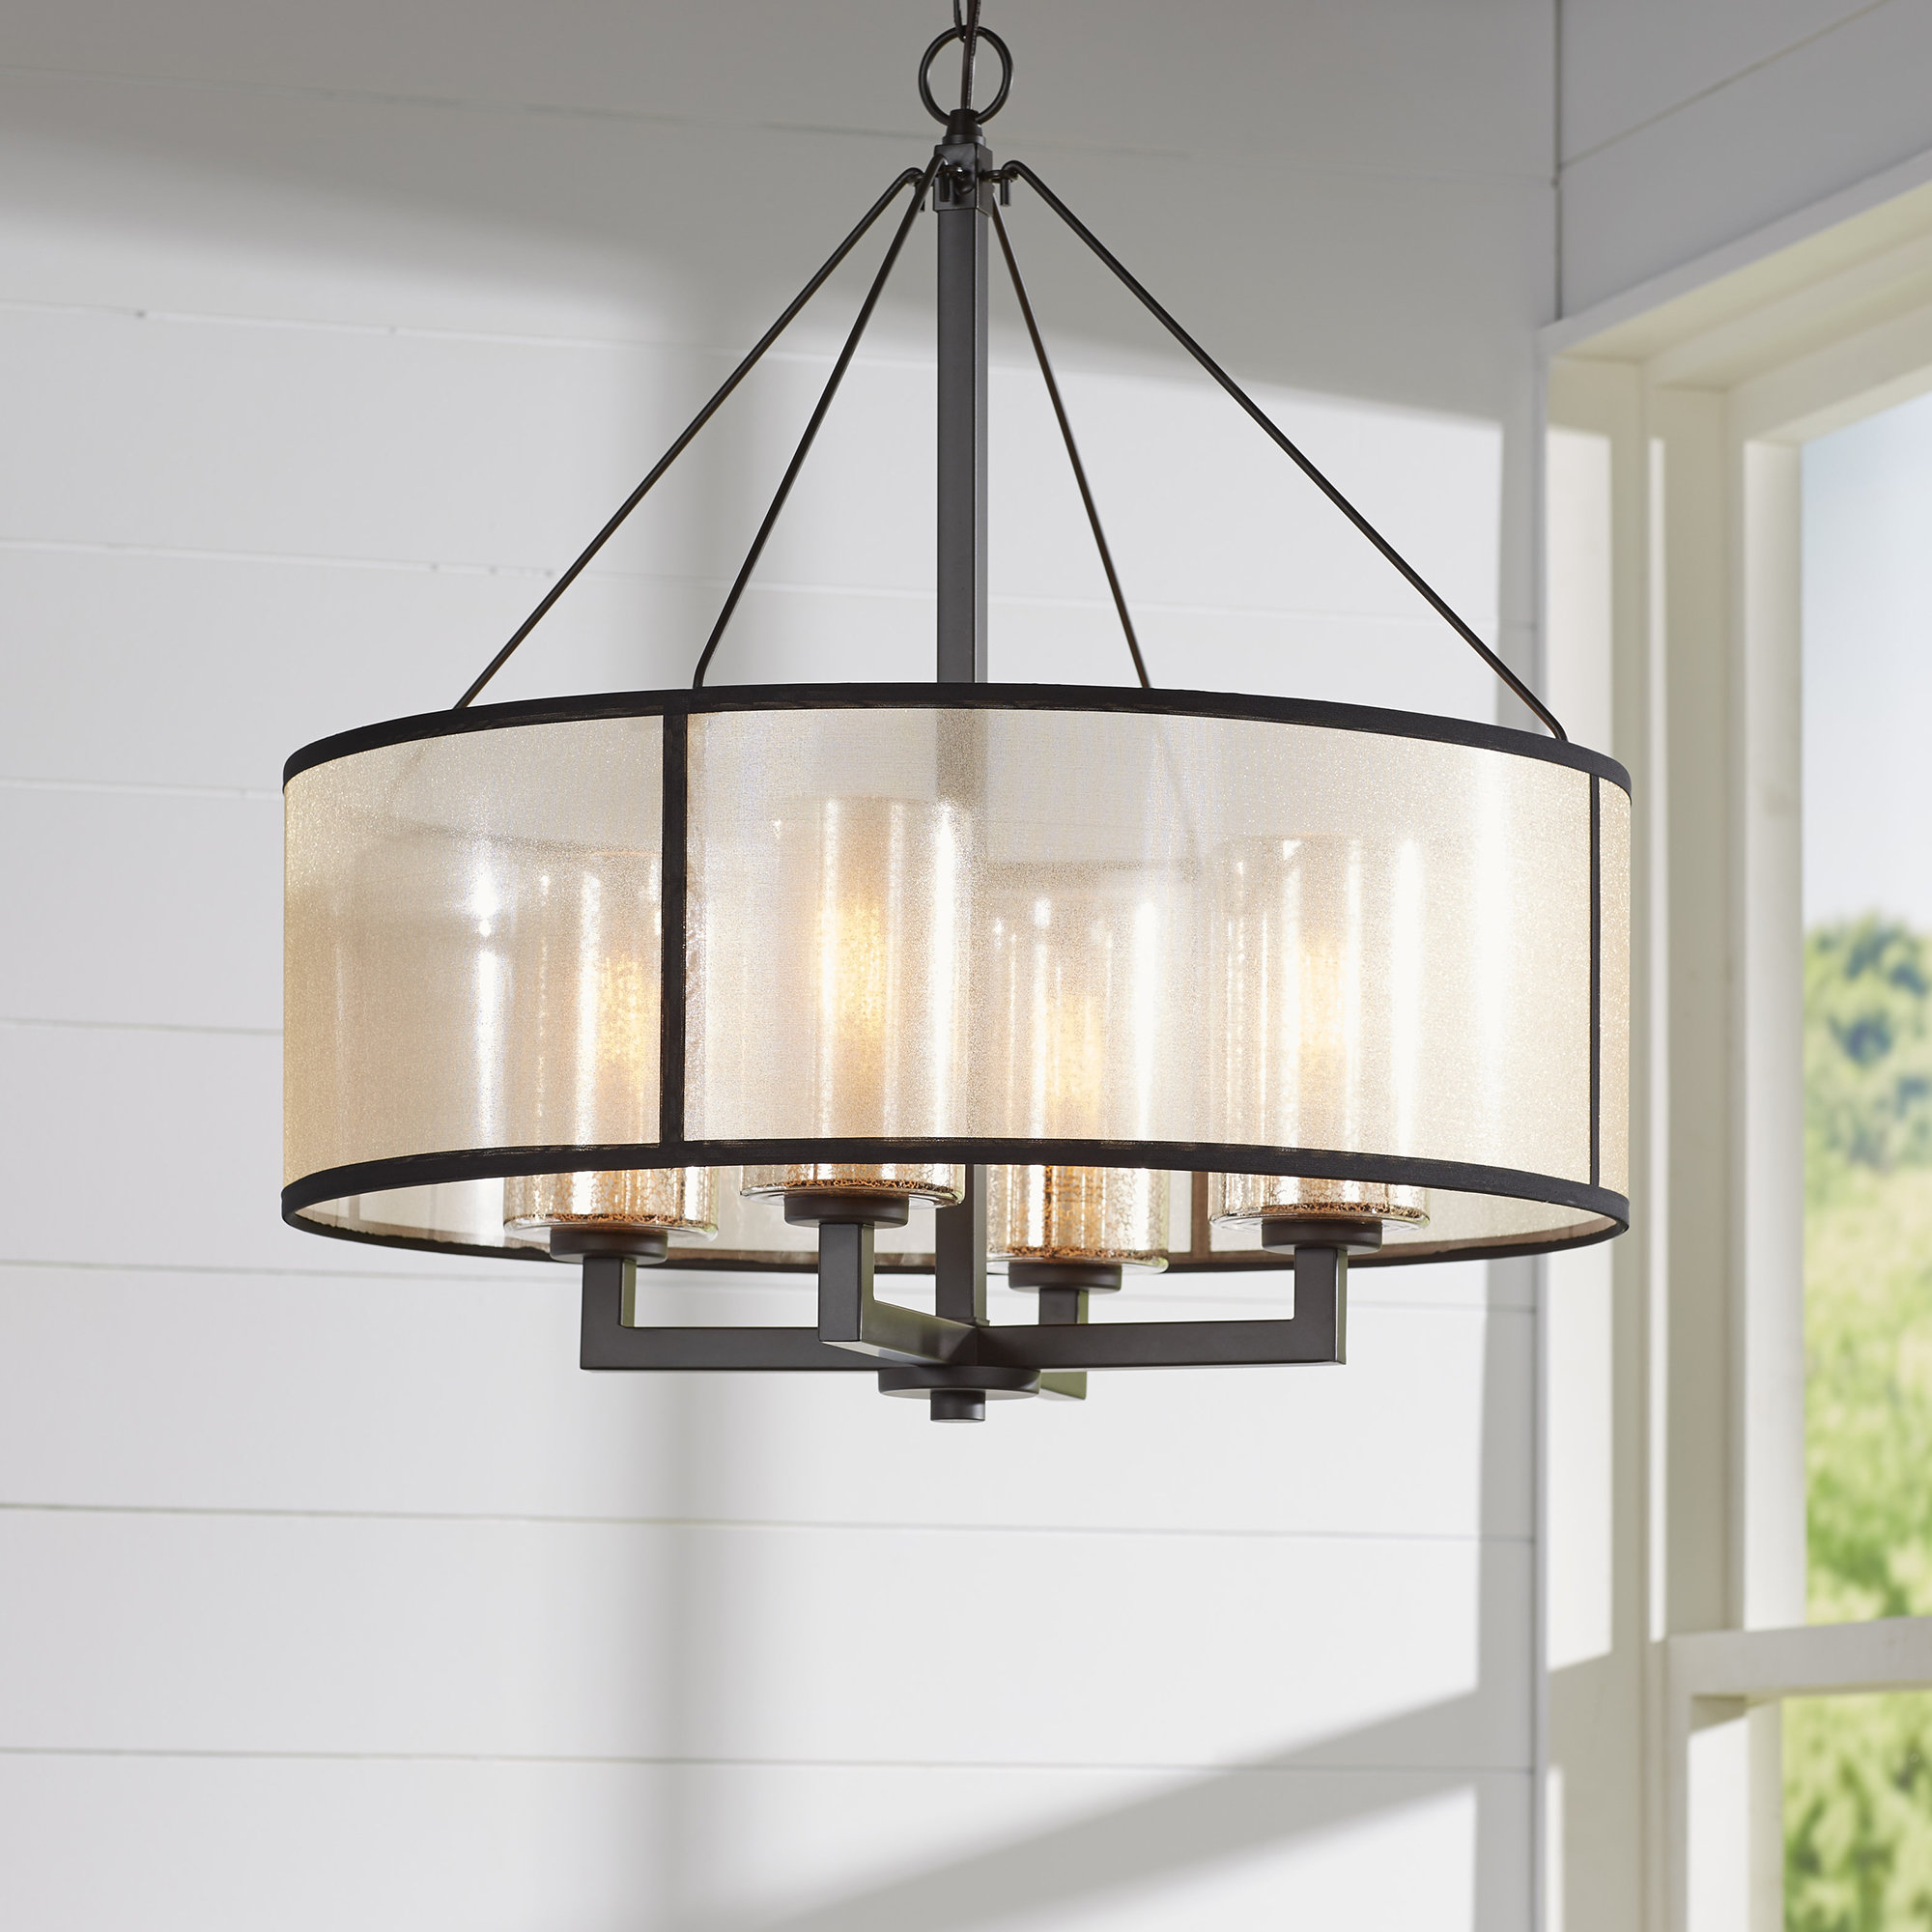 Preferred Farrier 3 Light Lantern Drum Pendants Pertaining To Darby Home Co Farrier 3 Light Lantern Drum Pendant & Reviews (View 17 of 20)